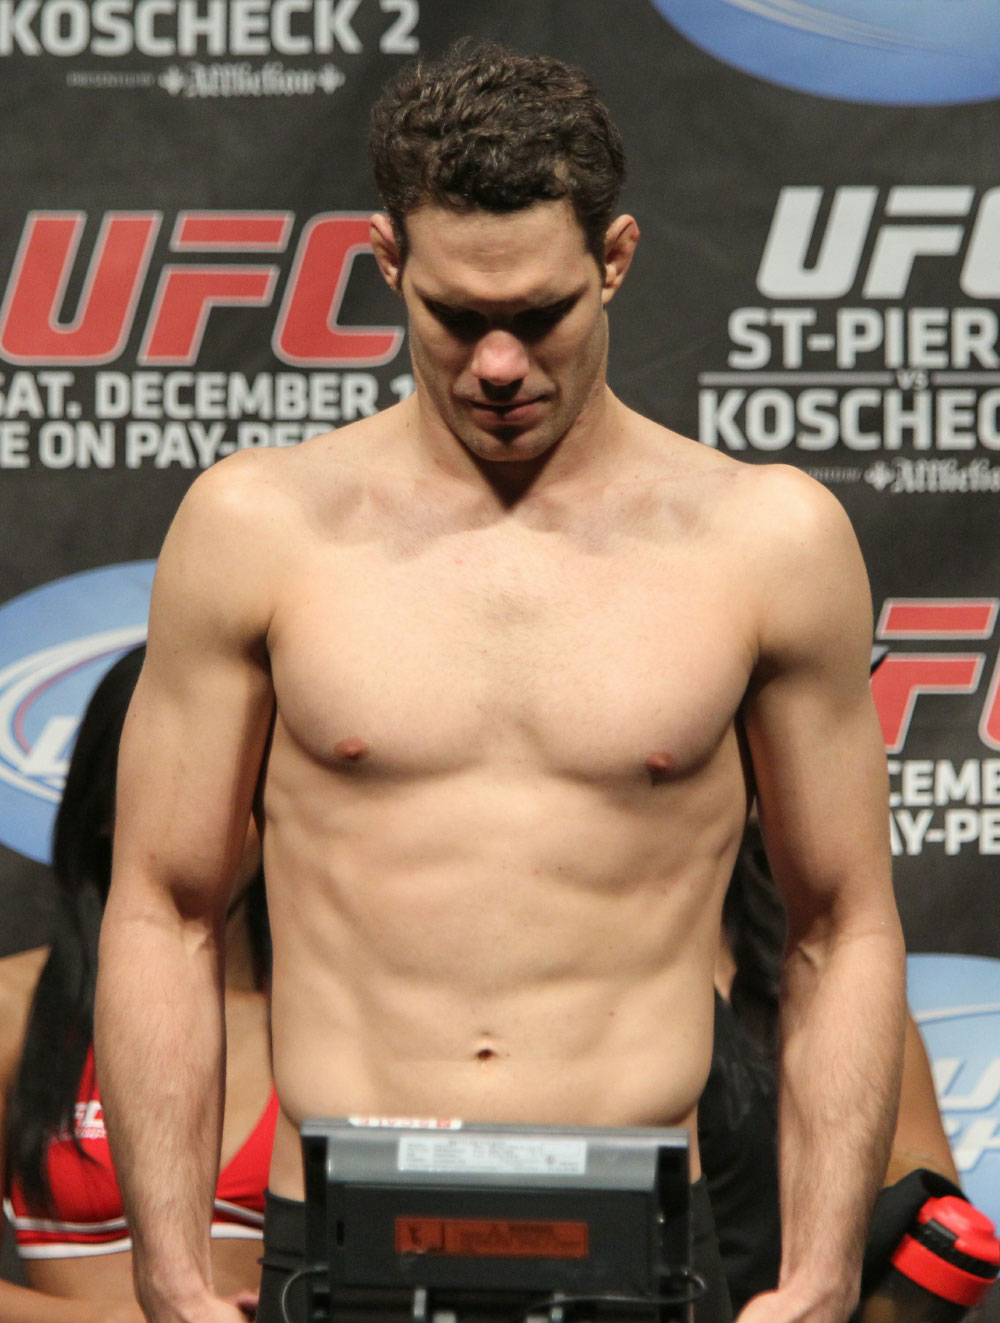 UFC 124 Weigh-in: Ricardo Almeida weighs in at 170.5bls.